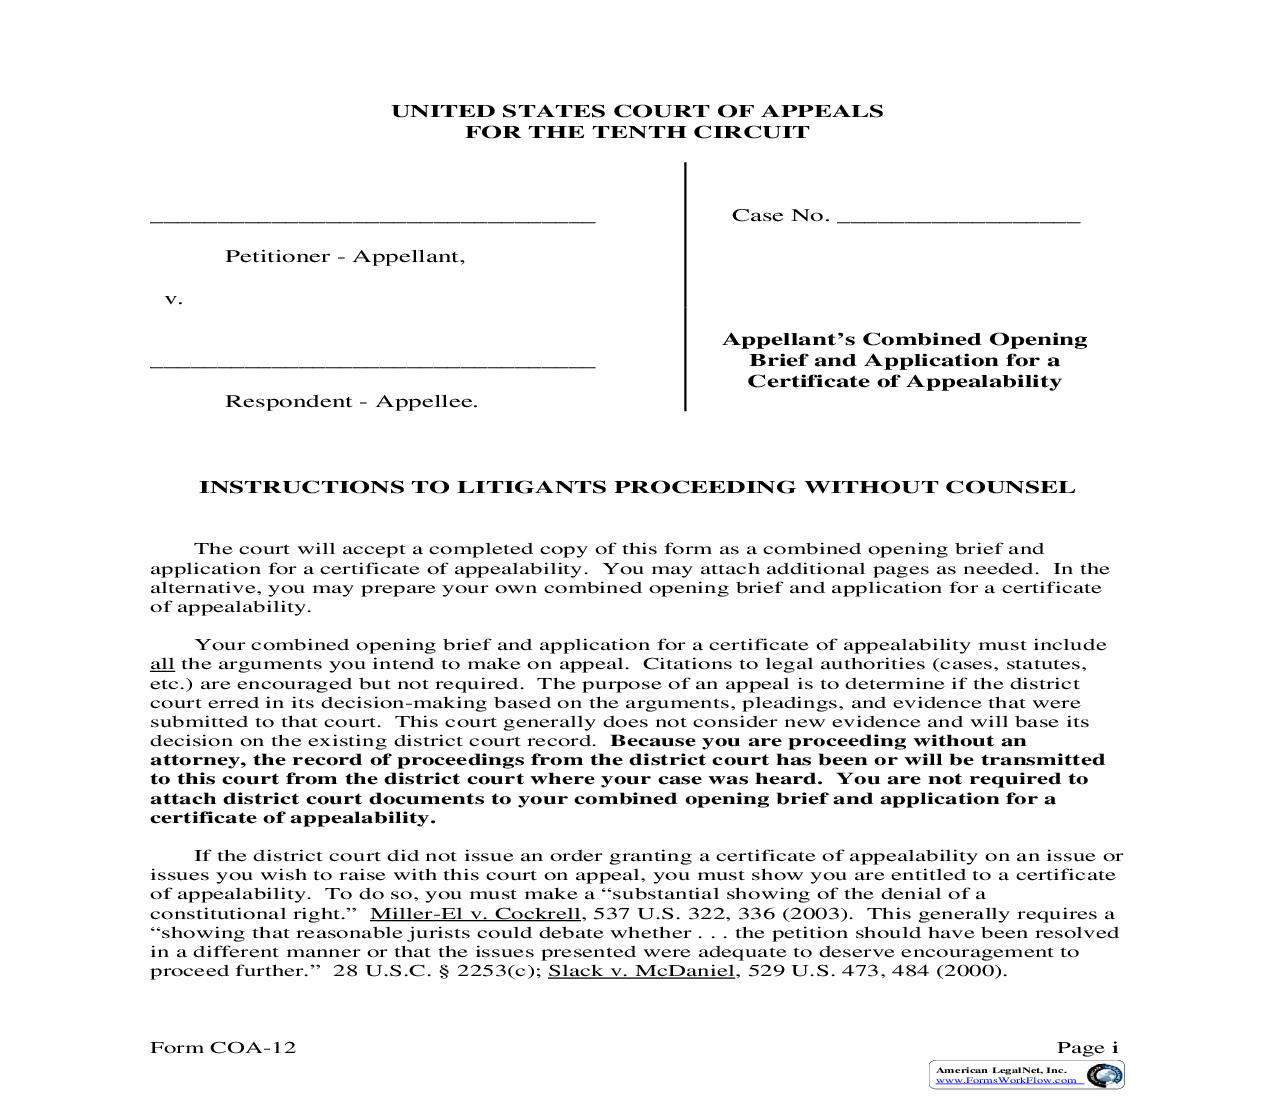 Appellants Combined Opening Brief And Application For Certificate Of Appealability {COA-12}   Pdf Fpdf Doc Docx   Official Federal Forms